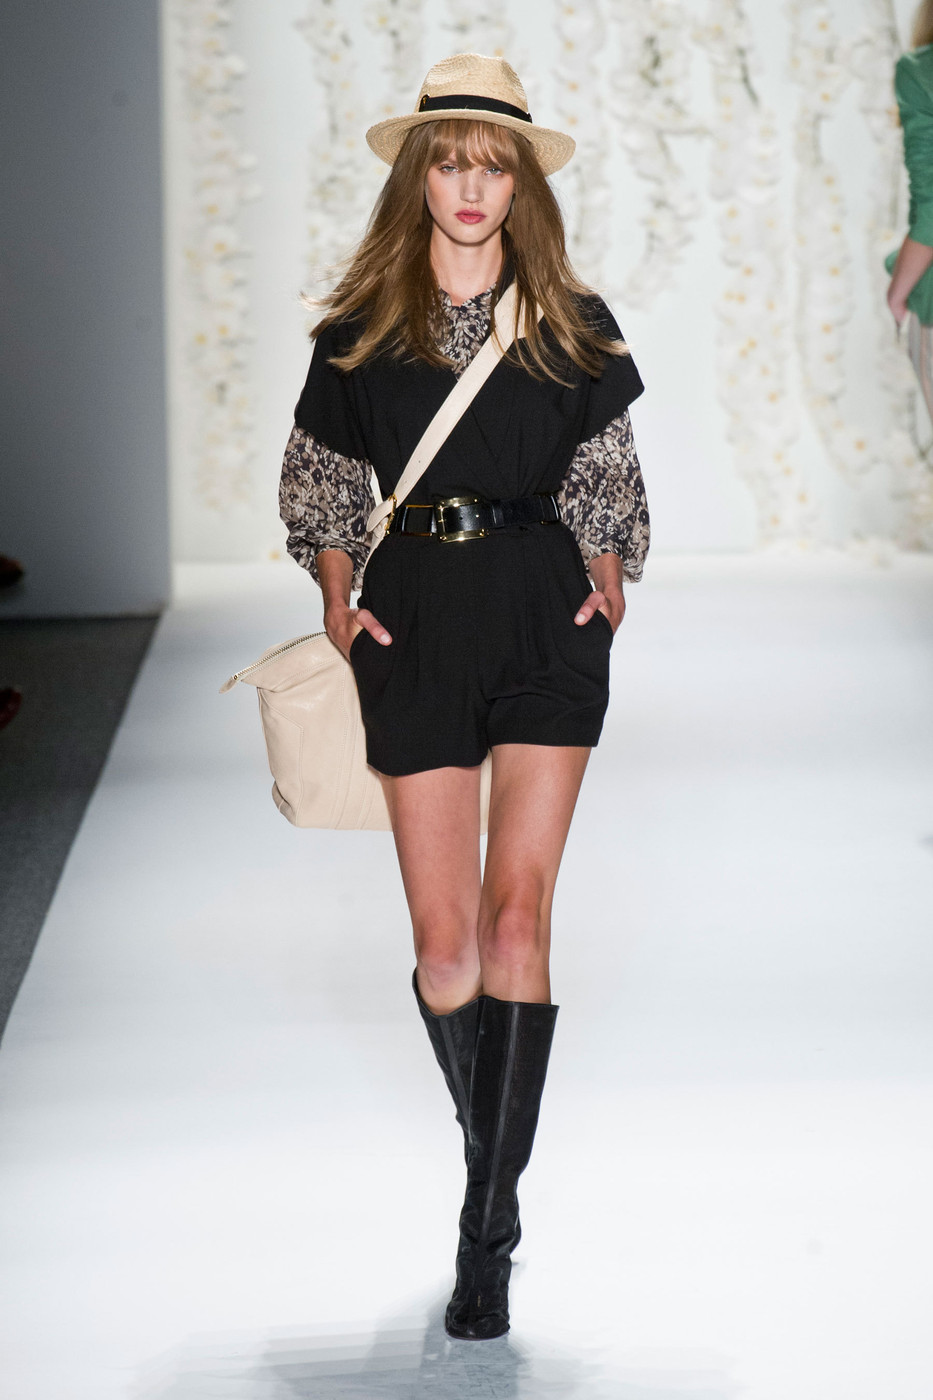 Rachel Zoe s Style DOs and DON Ts Glamour 86